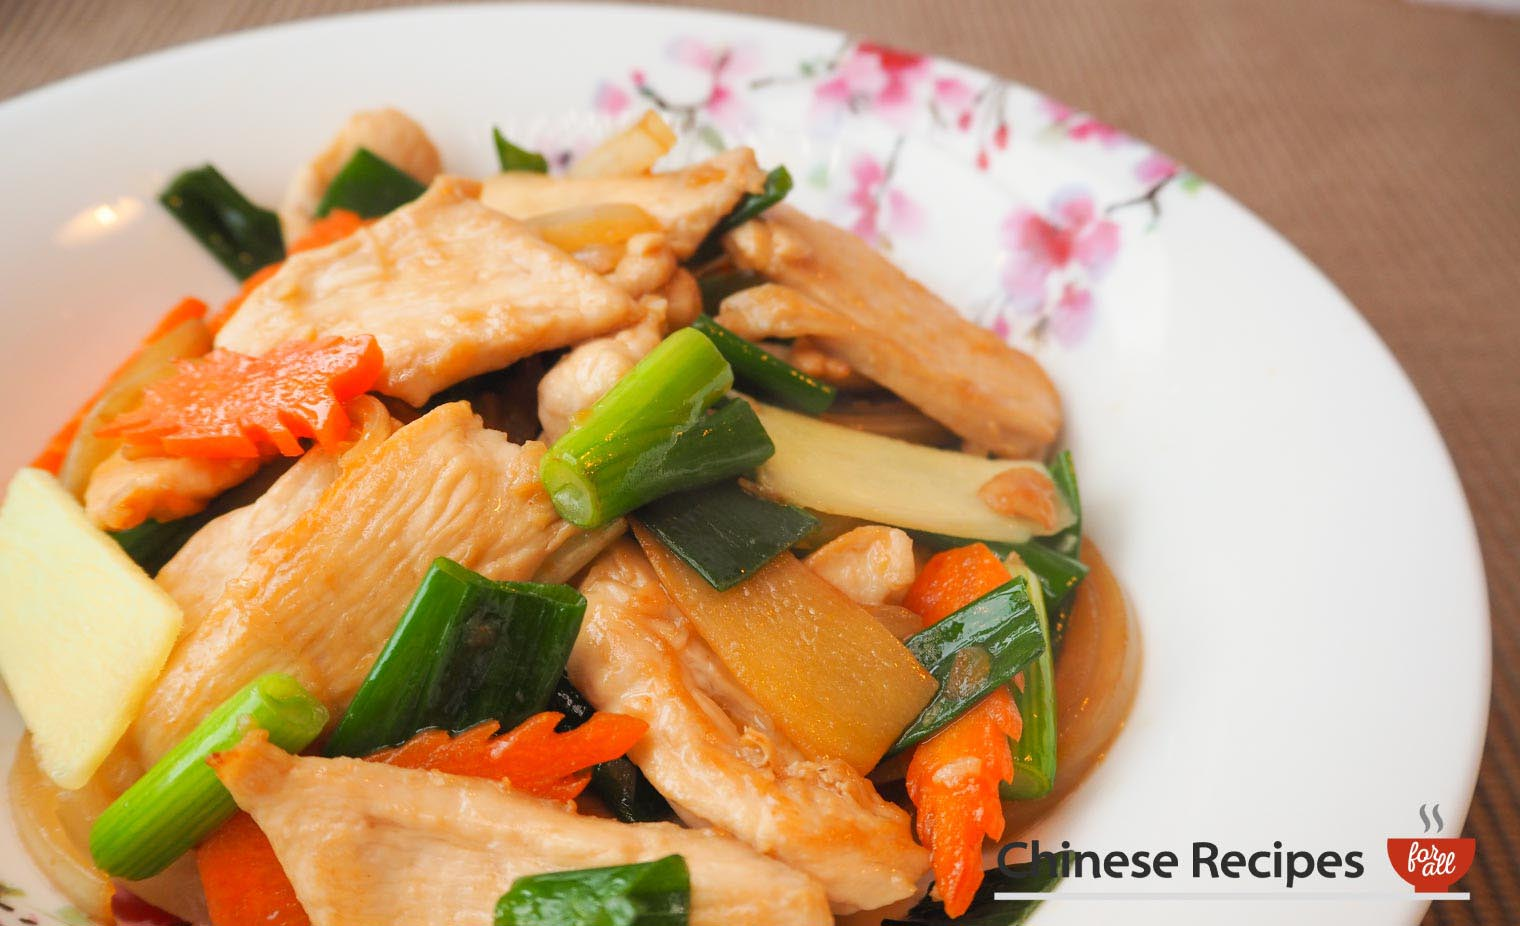 And ginger with spring onion chinese recipes for all chicken and ginger with spring onion chinese recipes for all forumfinder Choice Image